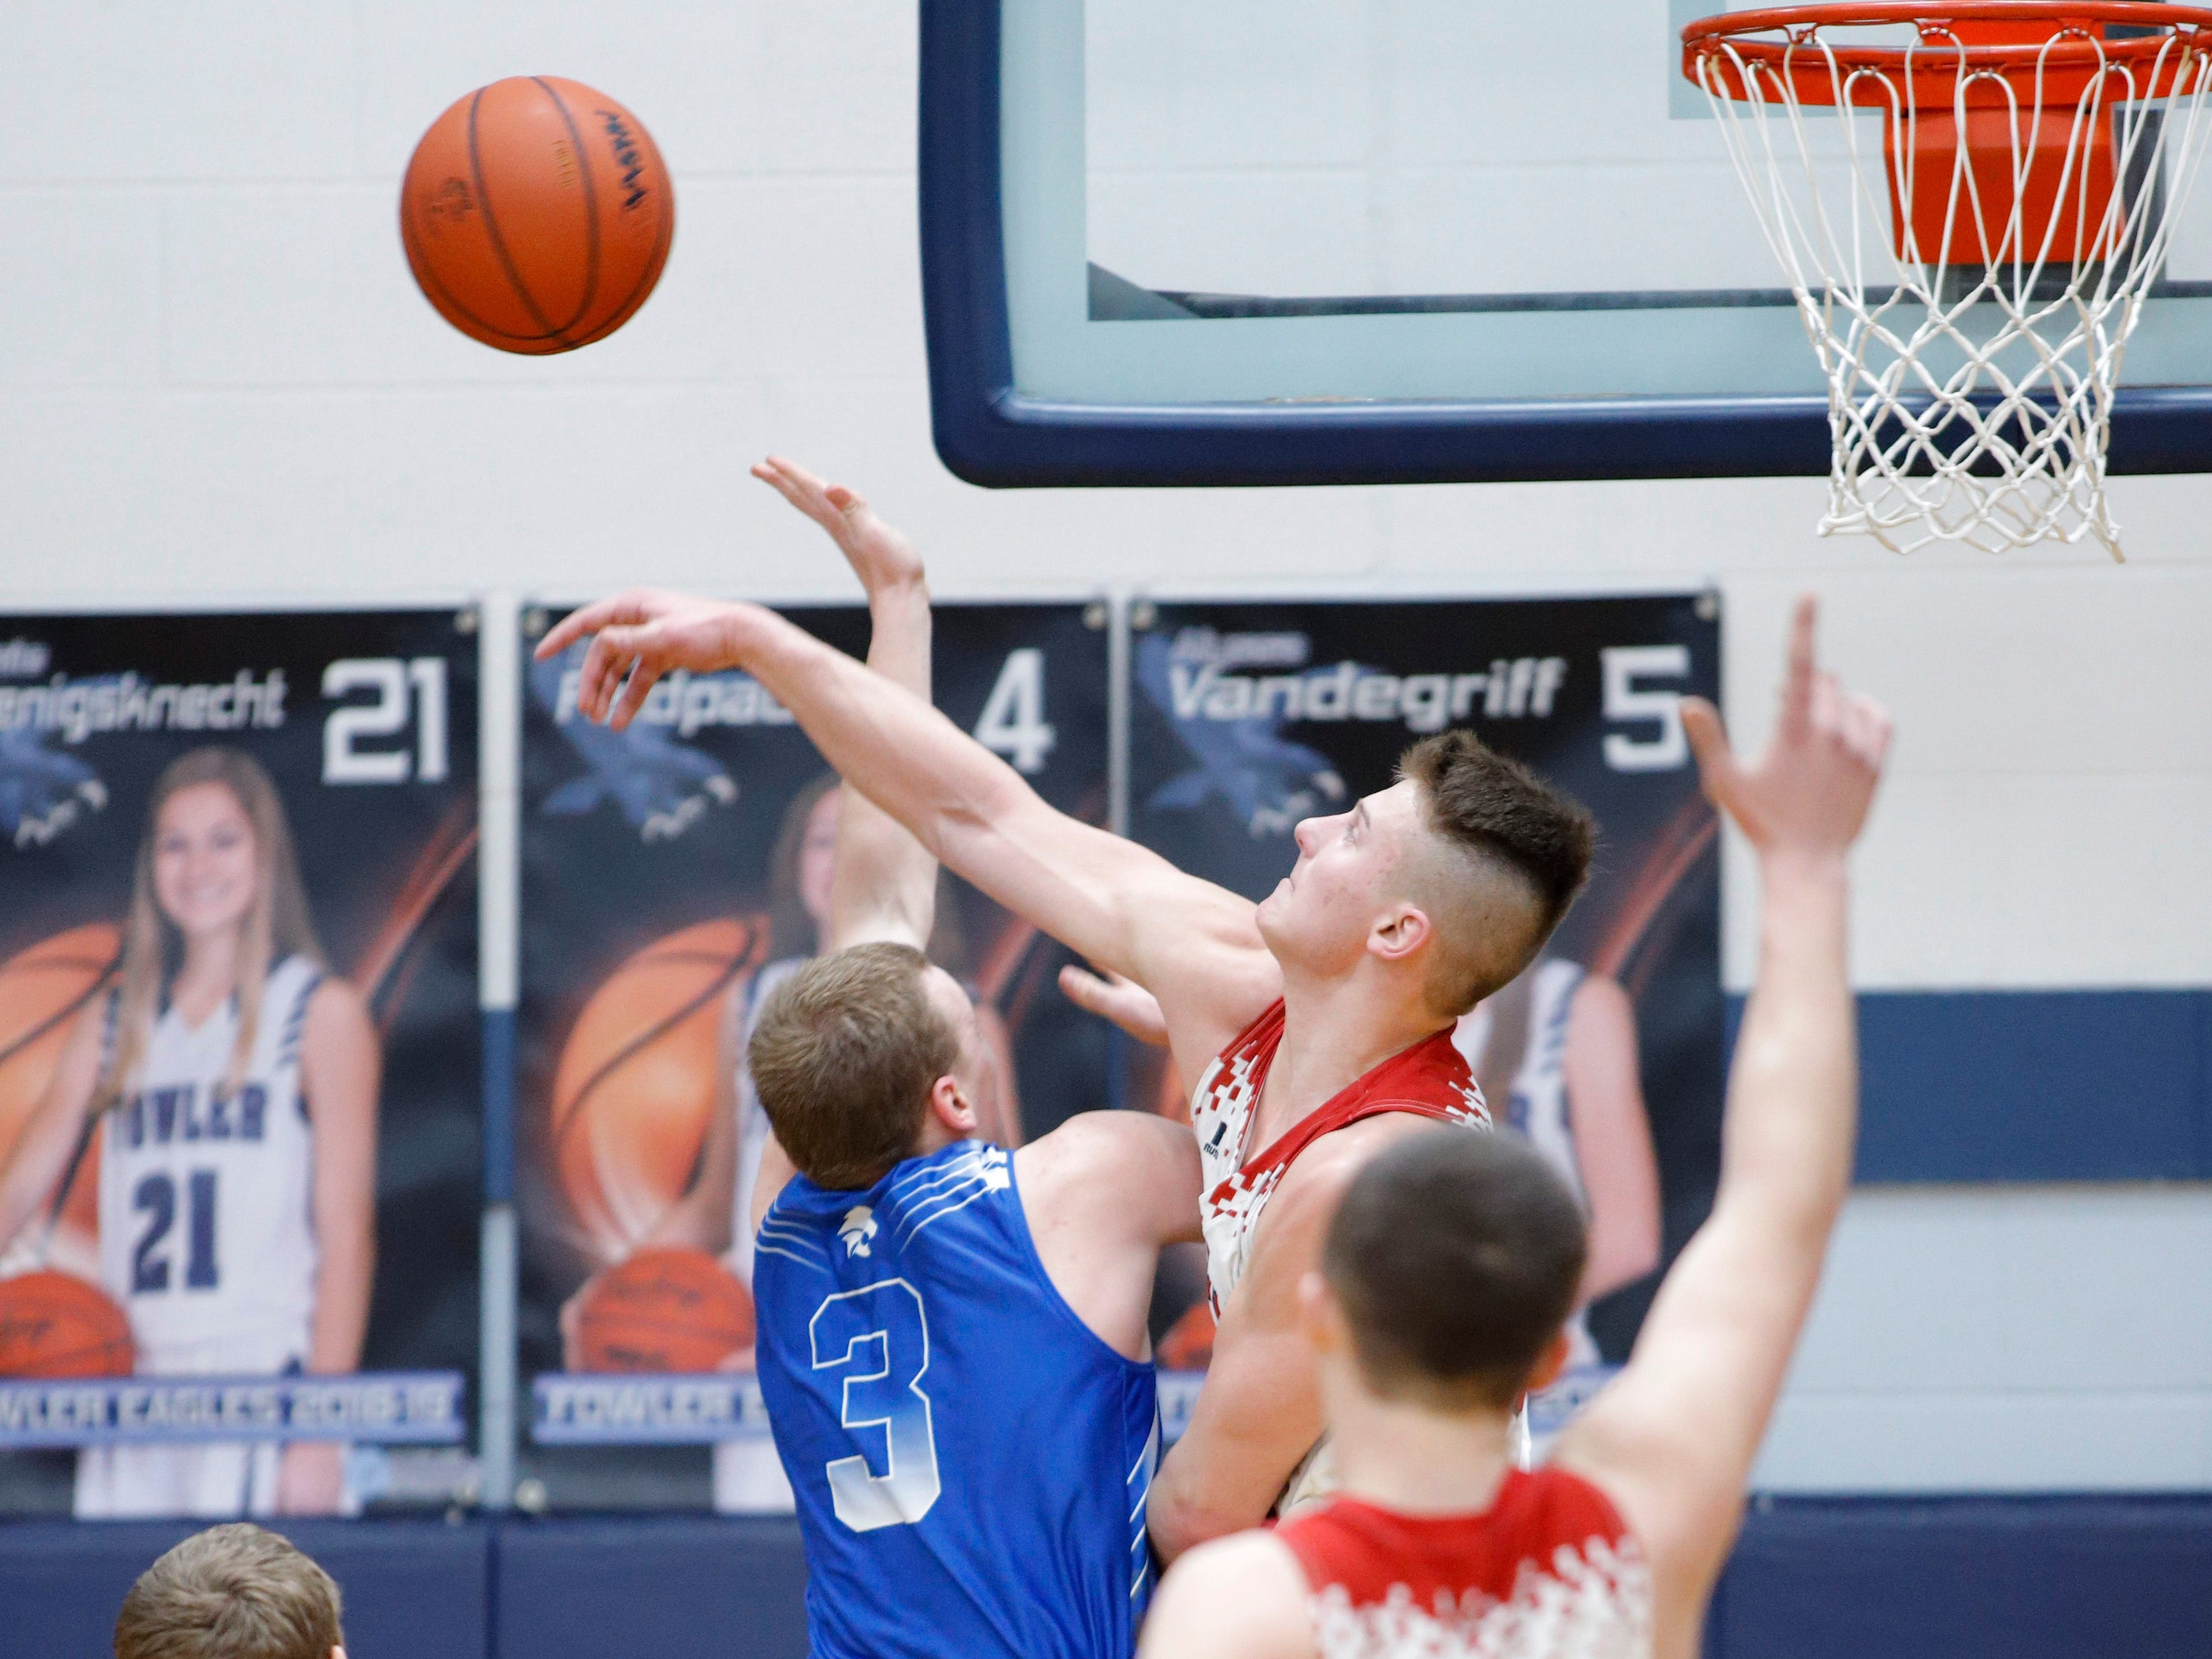 Bellevue's Caron Betz, top right, blocks a shot by Pittsford's Jesse Clement (3) in their regional final, Thursday, March 7, 2019, in Fowler, Mich. Bellevue won 42-28.